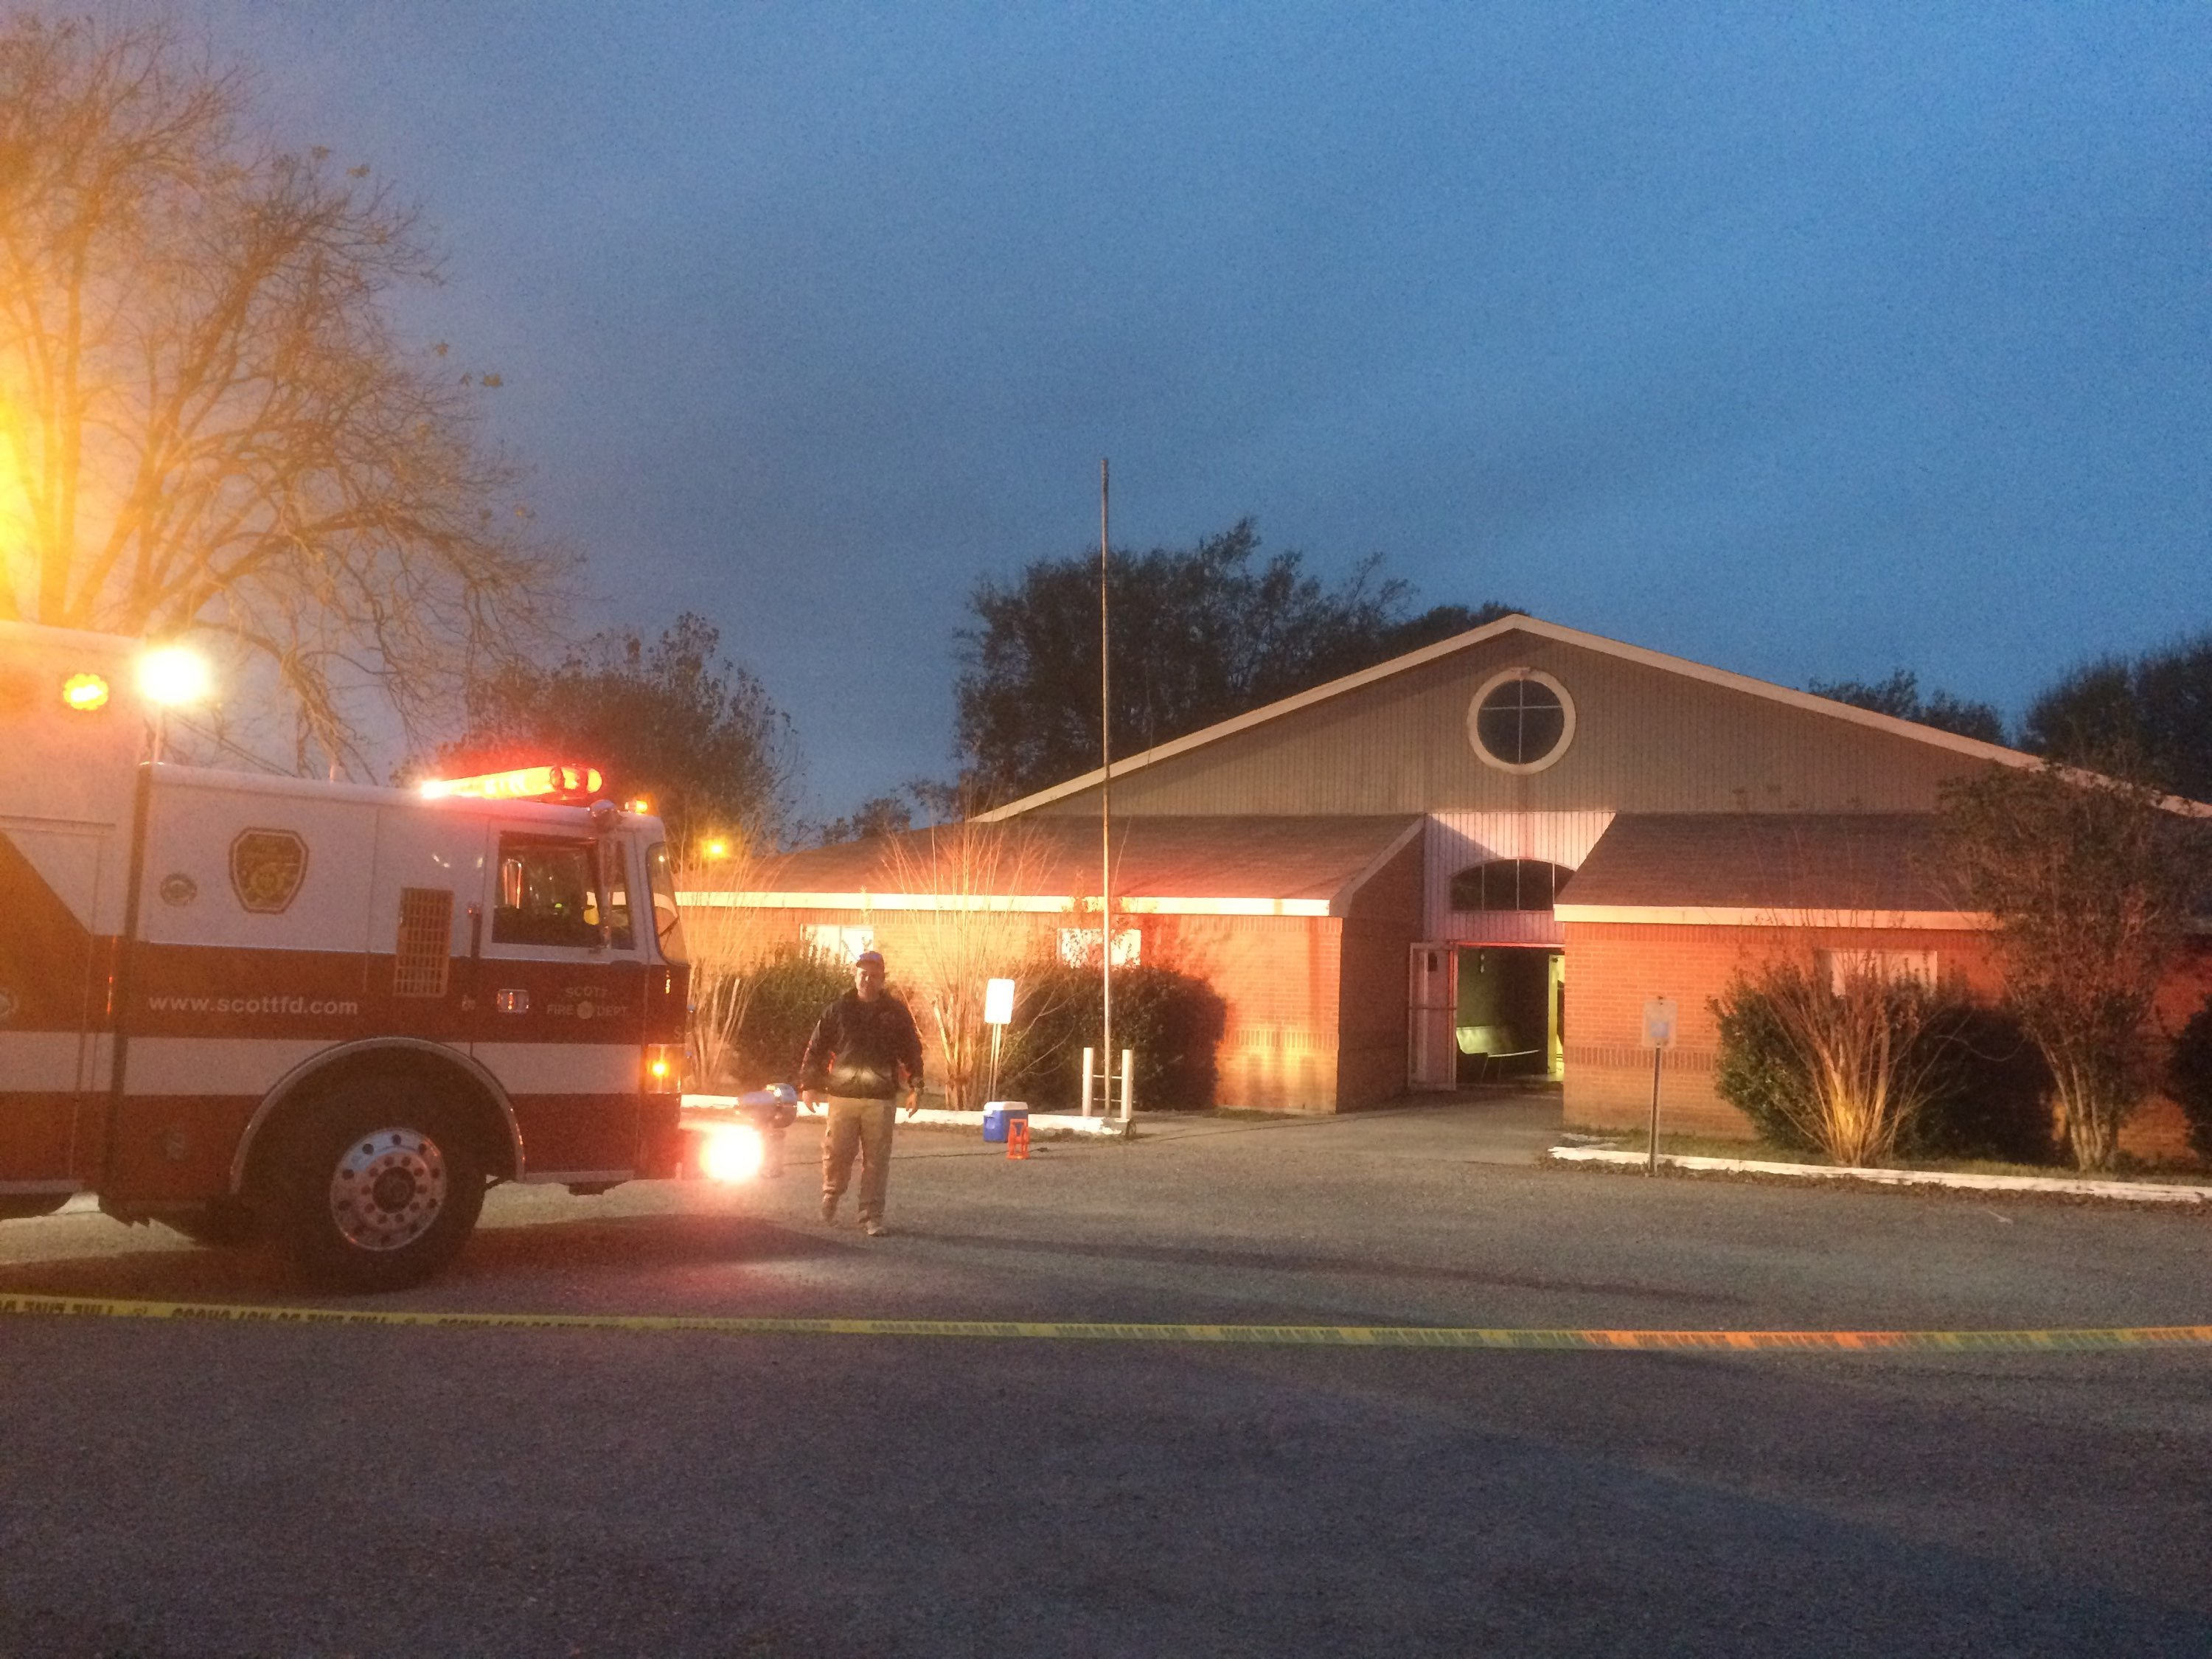 Crews are on the scene of a fire at St Martin De Porres' church hall in Scott / KATC